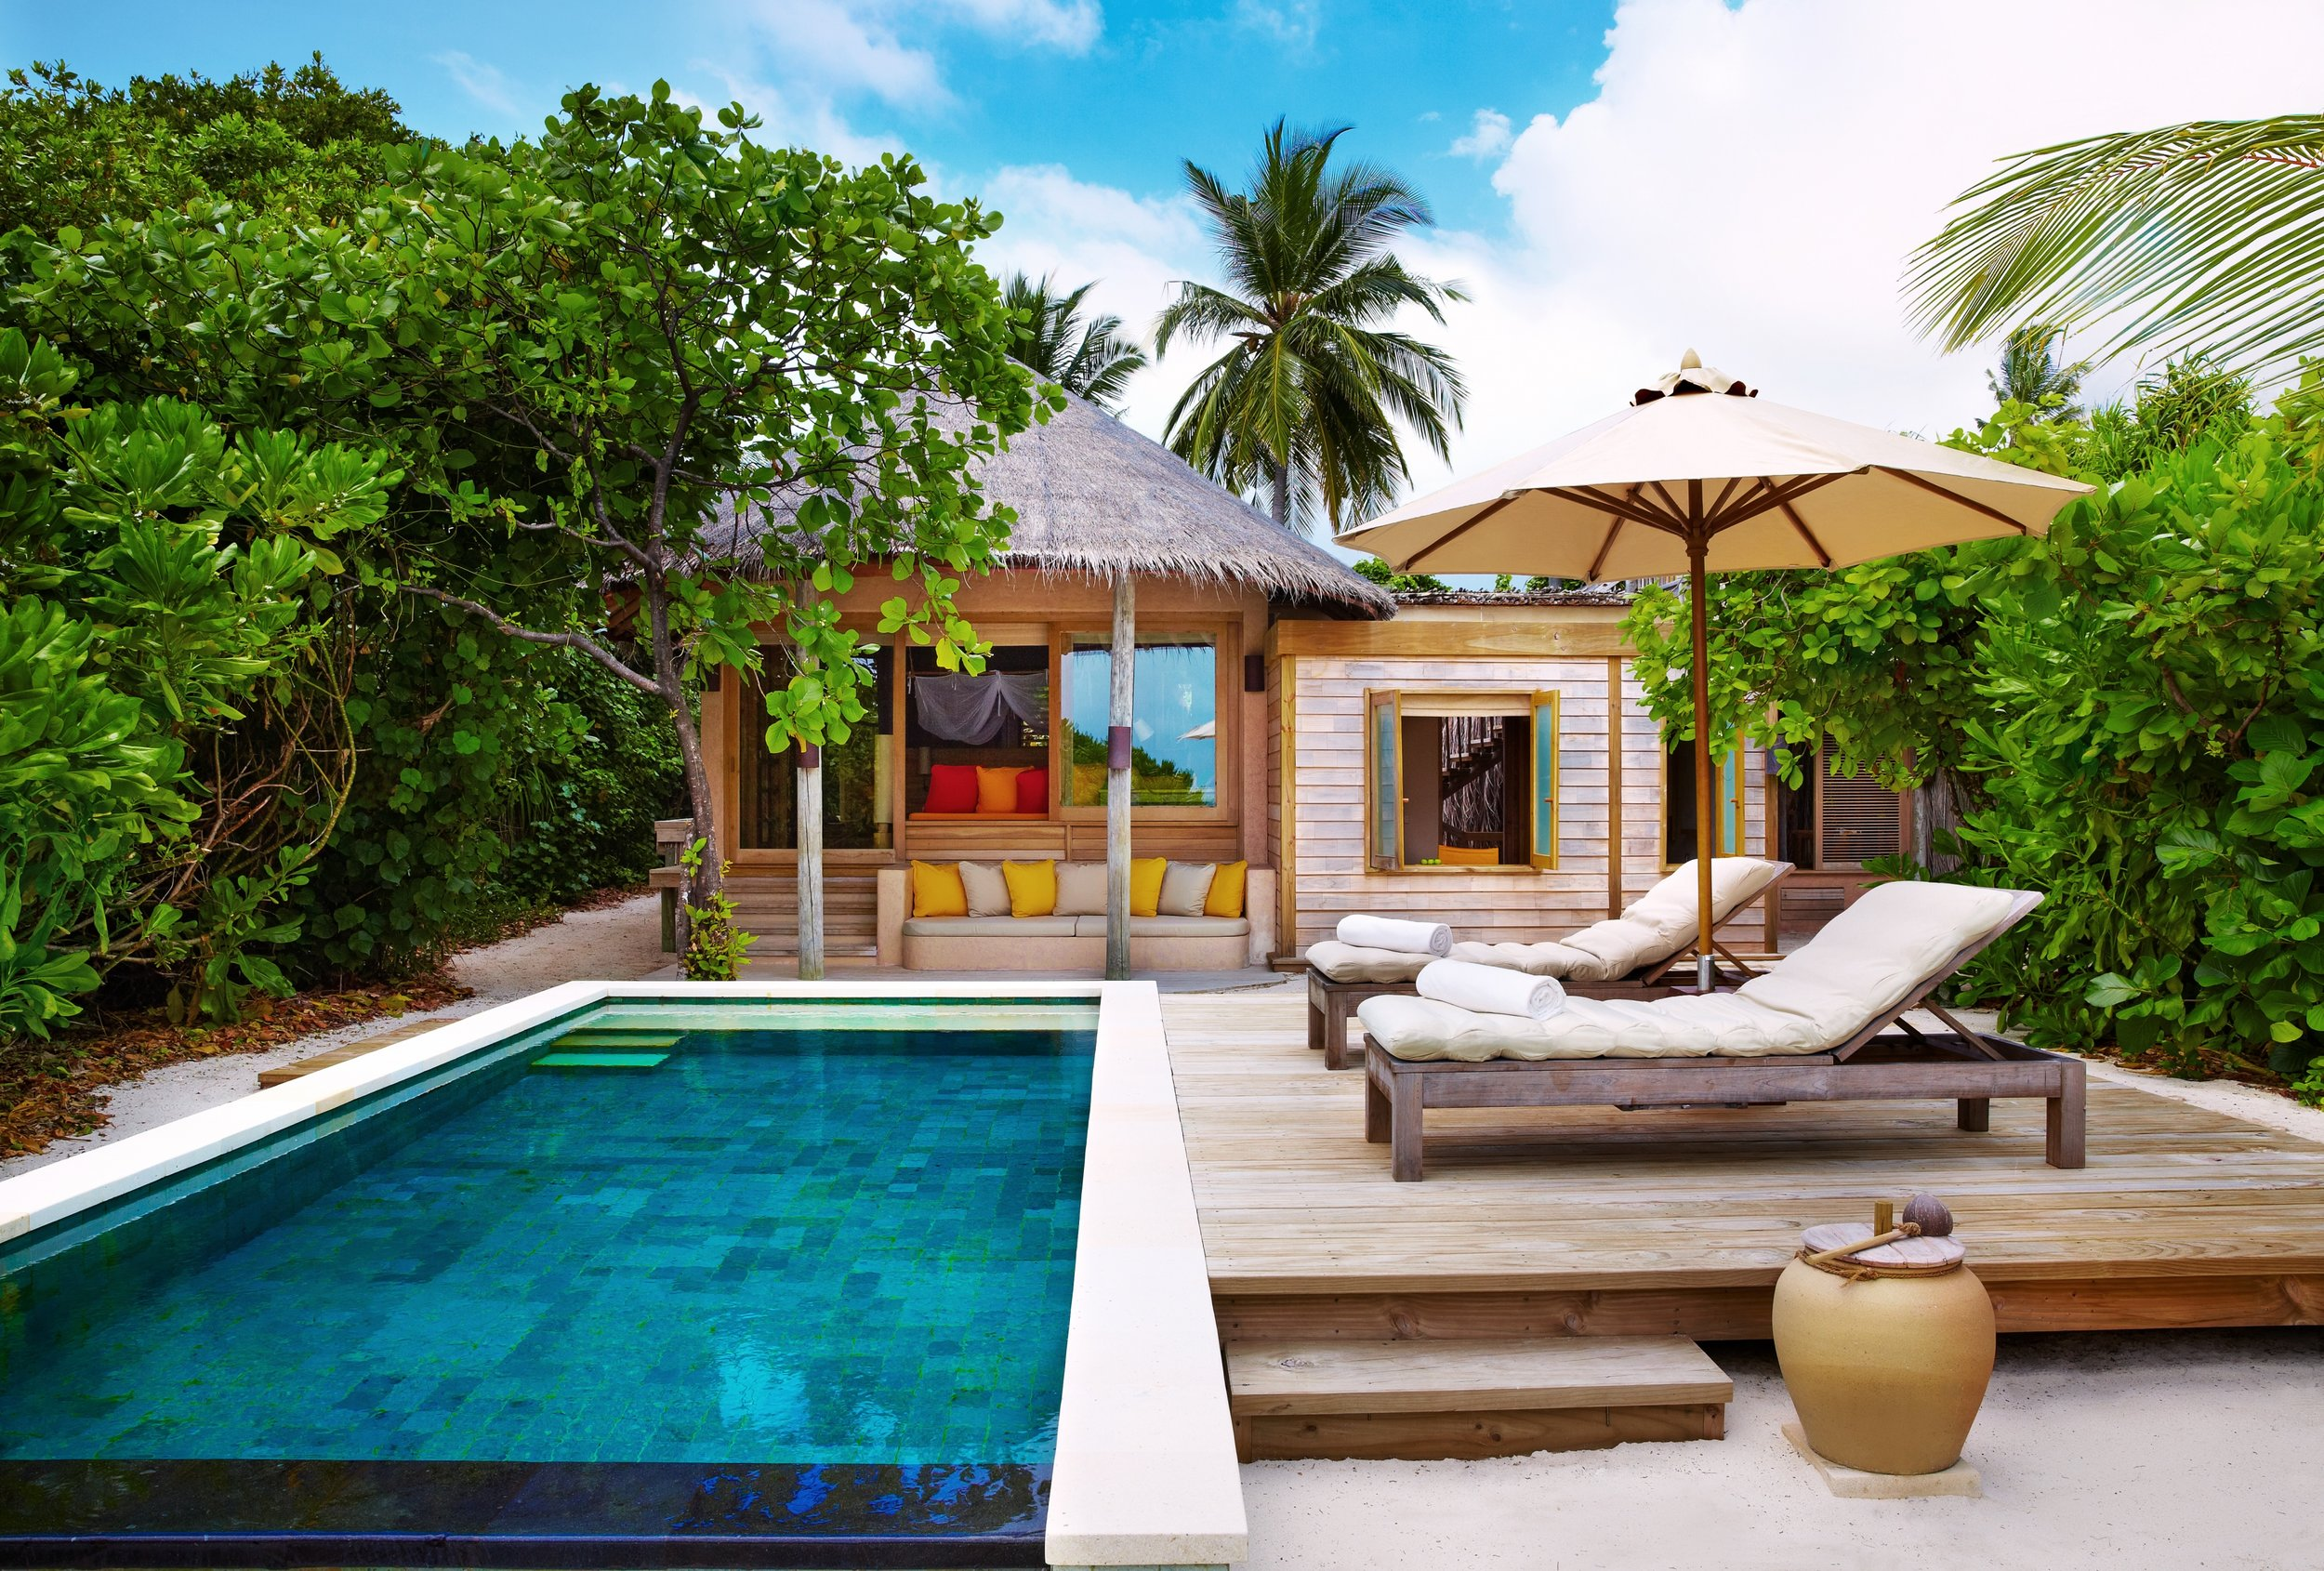 Family_Villa_with_Pool_exterior_[6043-A4].jpg